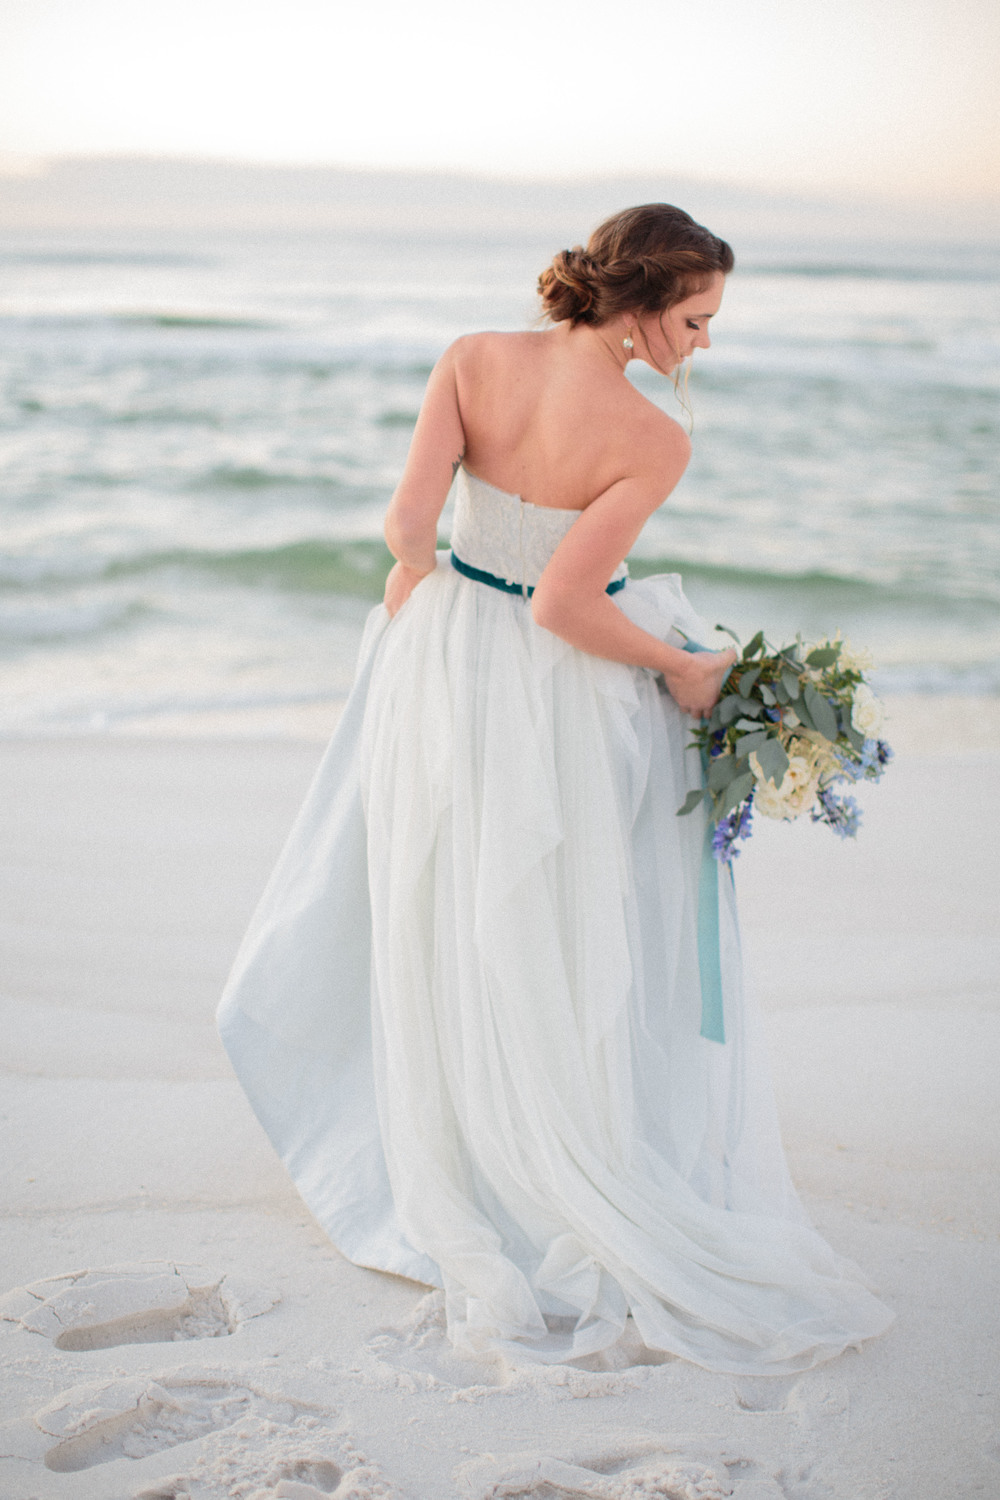 Ais-Portraits-ivey-weddings-and-events-ivory-and-beau-bridal-boutique-sunrise-wedding-sunrise-bridal-session-blue-dress-rebecca-schoneveld-wedding-dress-blue-velvet-wedding-beach-wedding-savannah-bridal-boutique-savannah-wedding-8.jpg